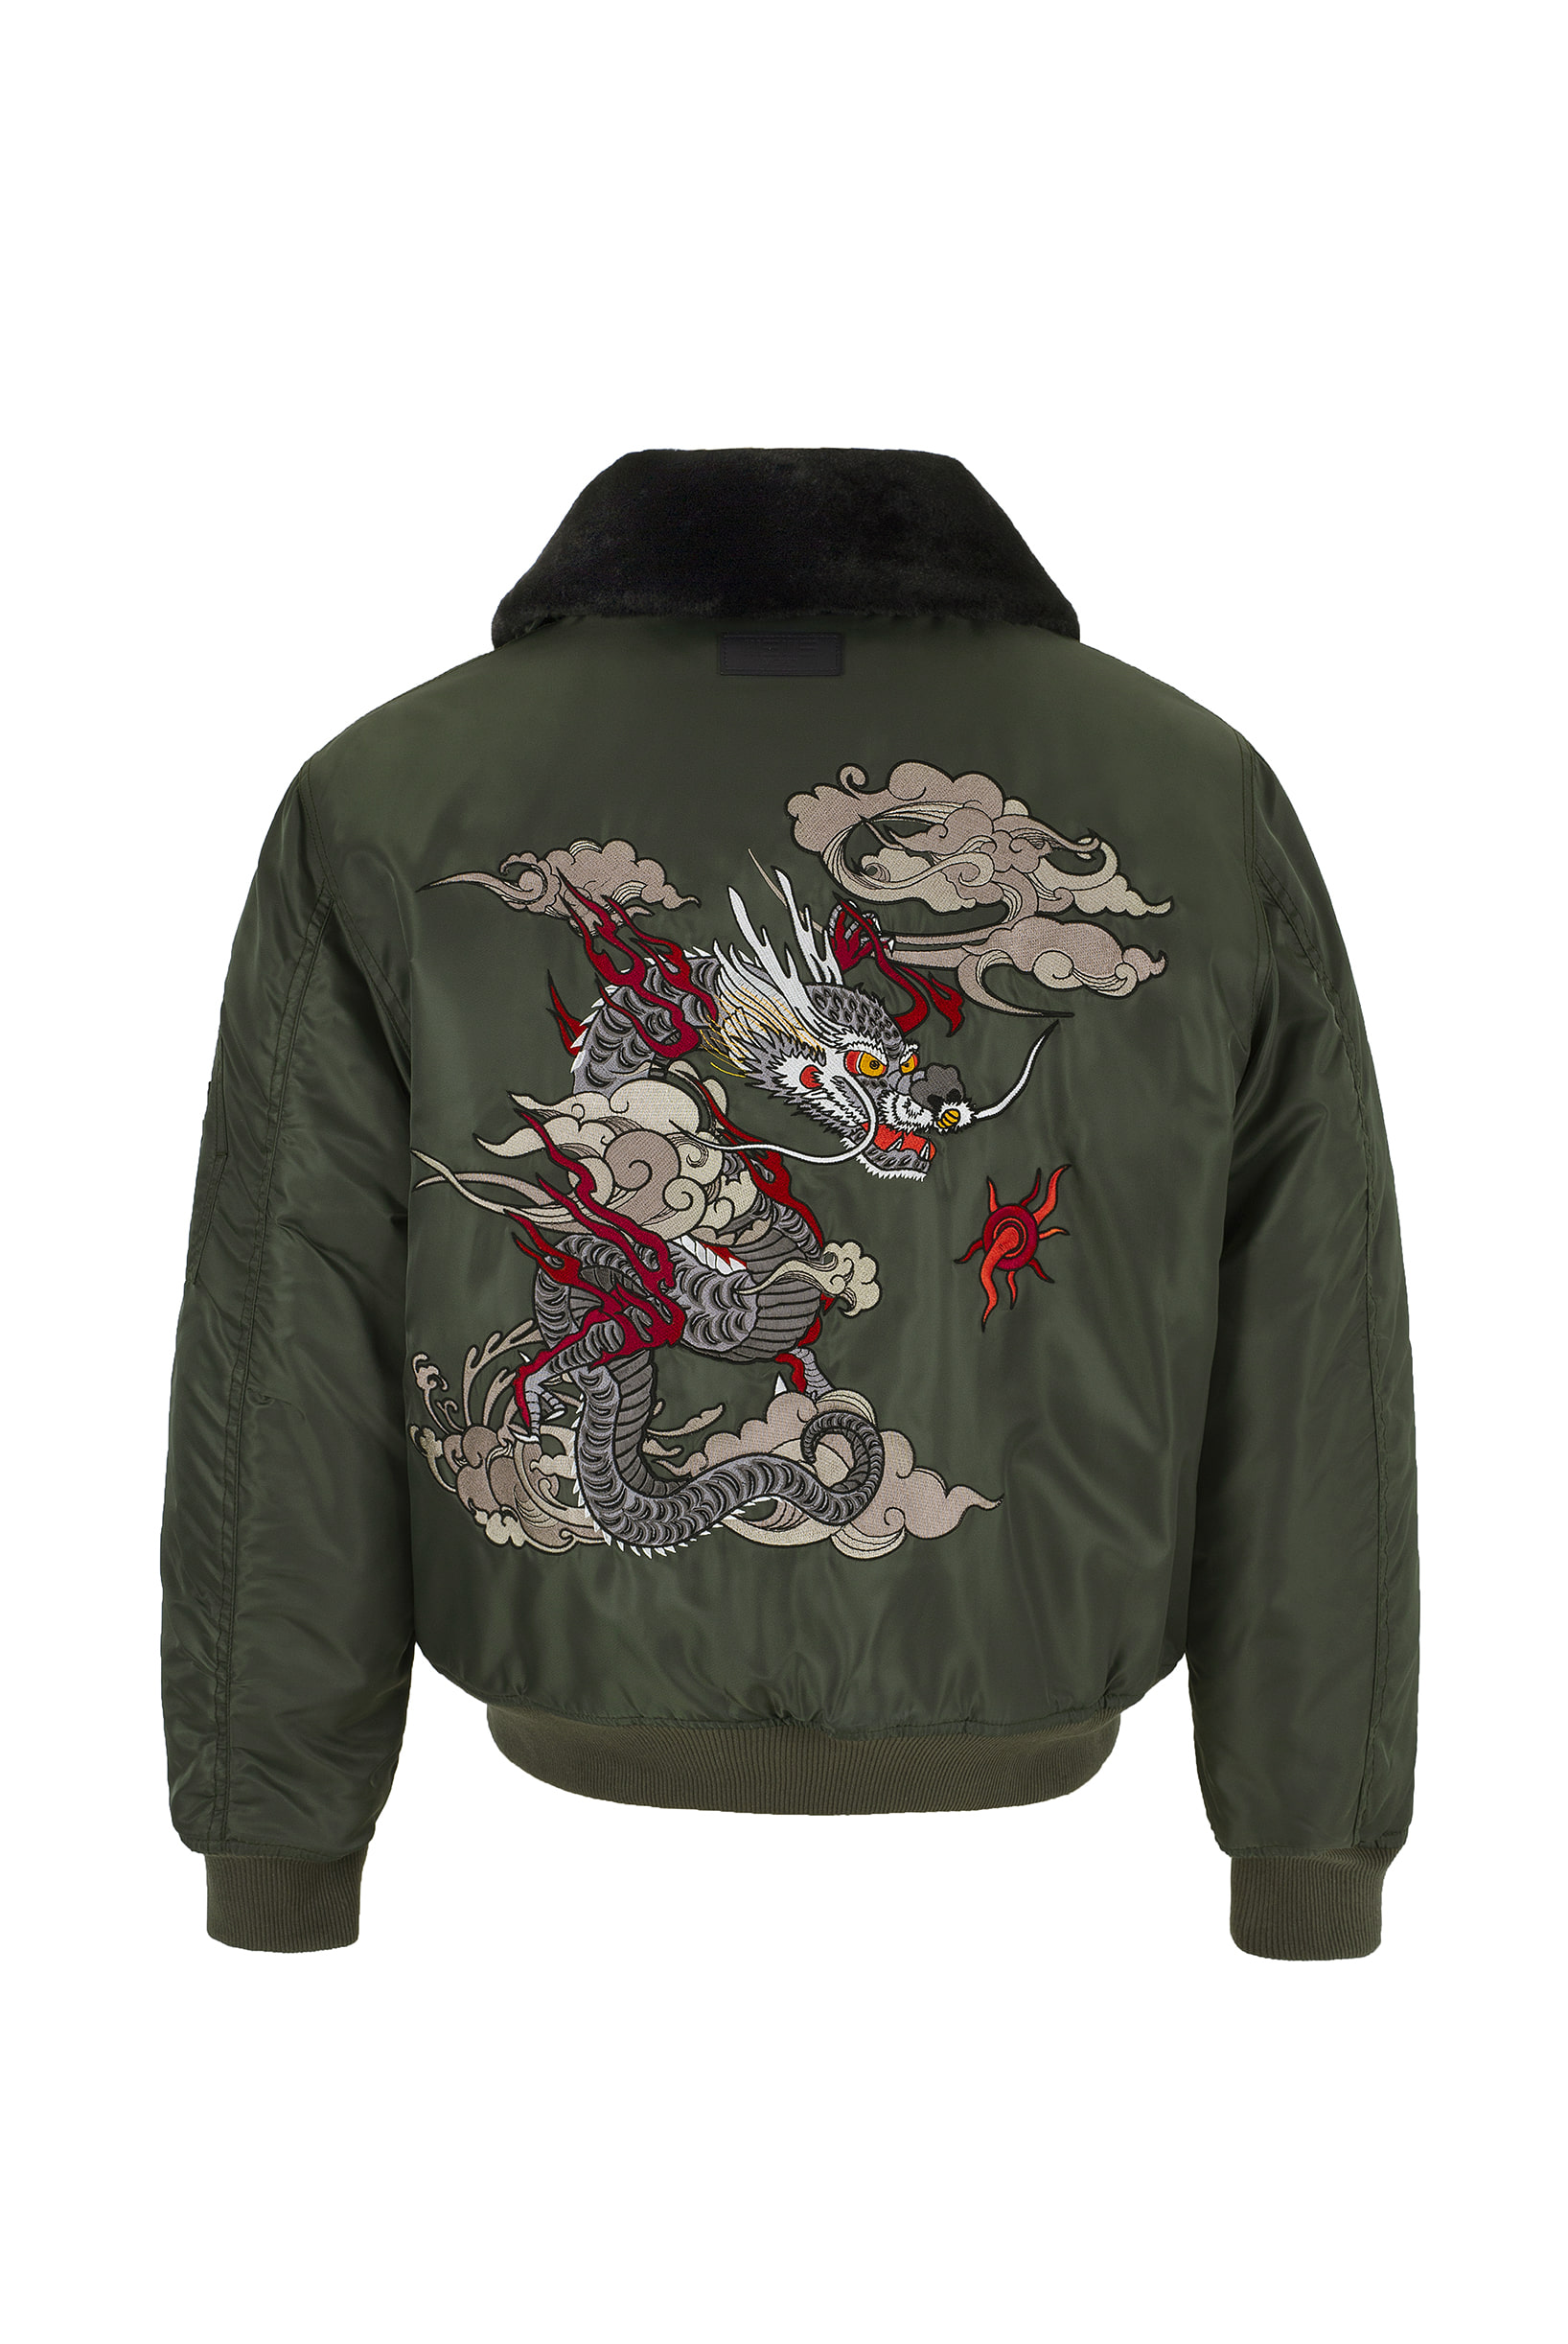 MIR EMBROIDERED MA-1